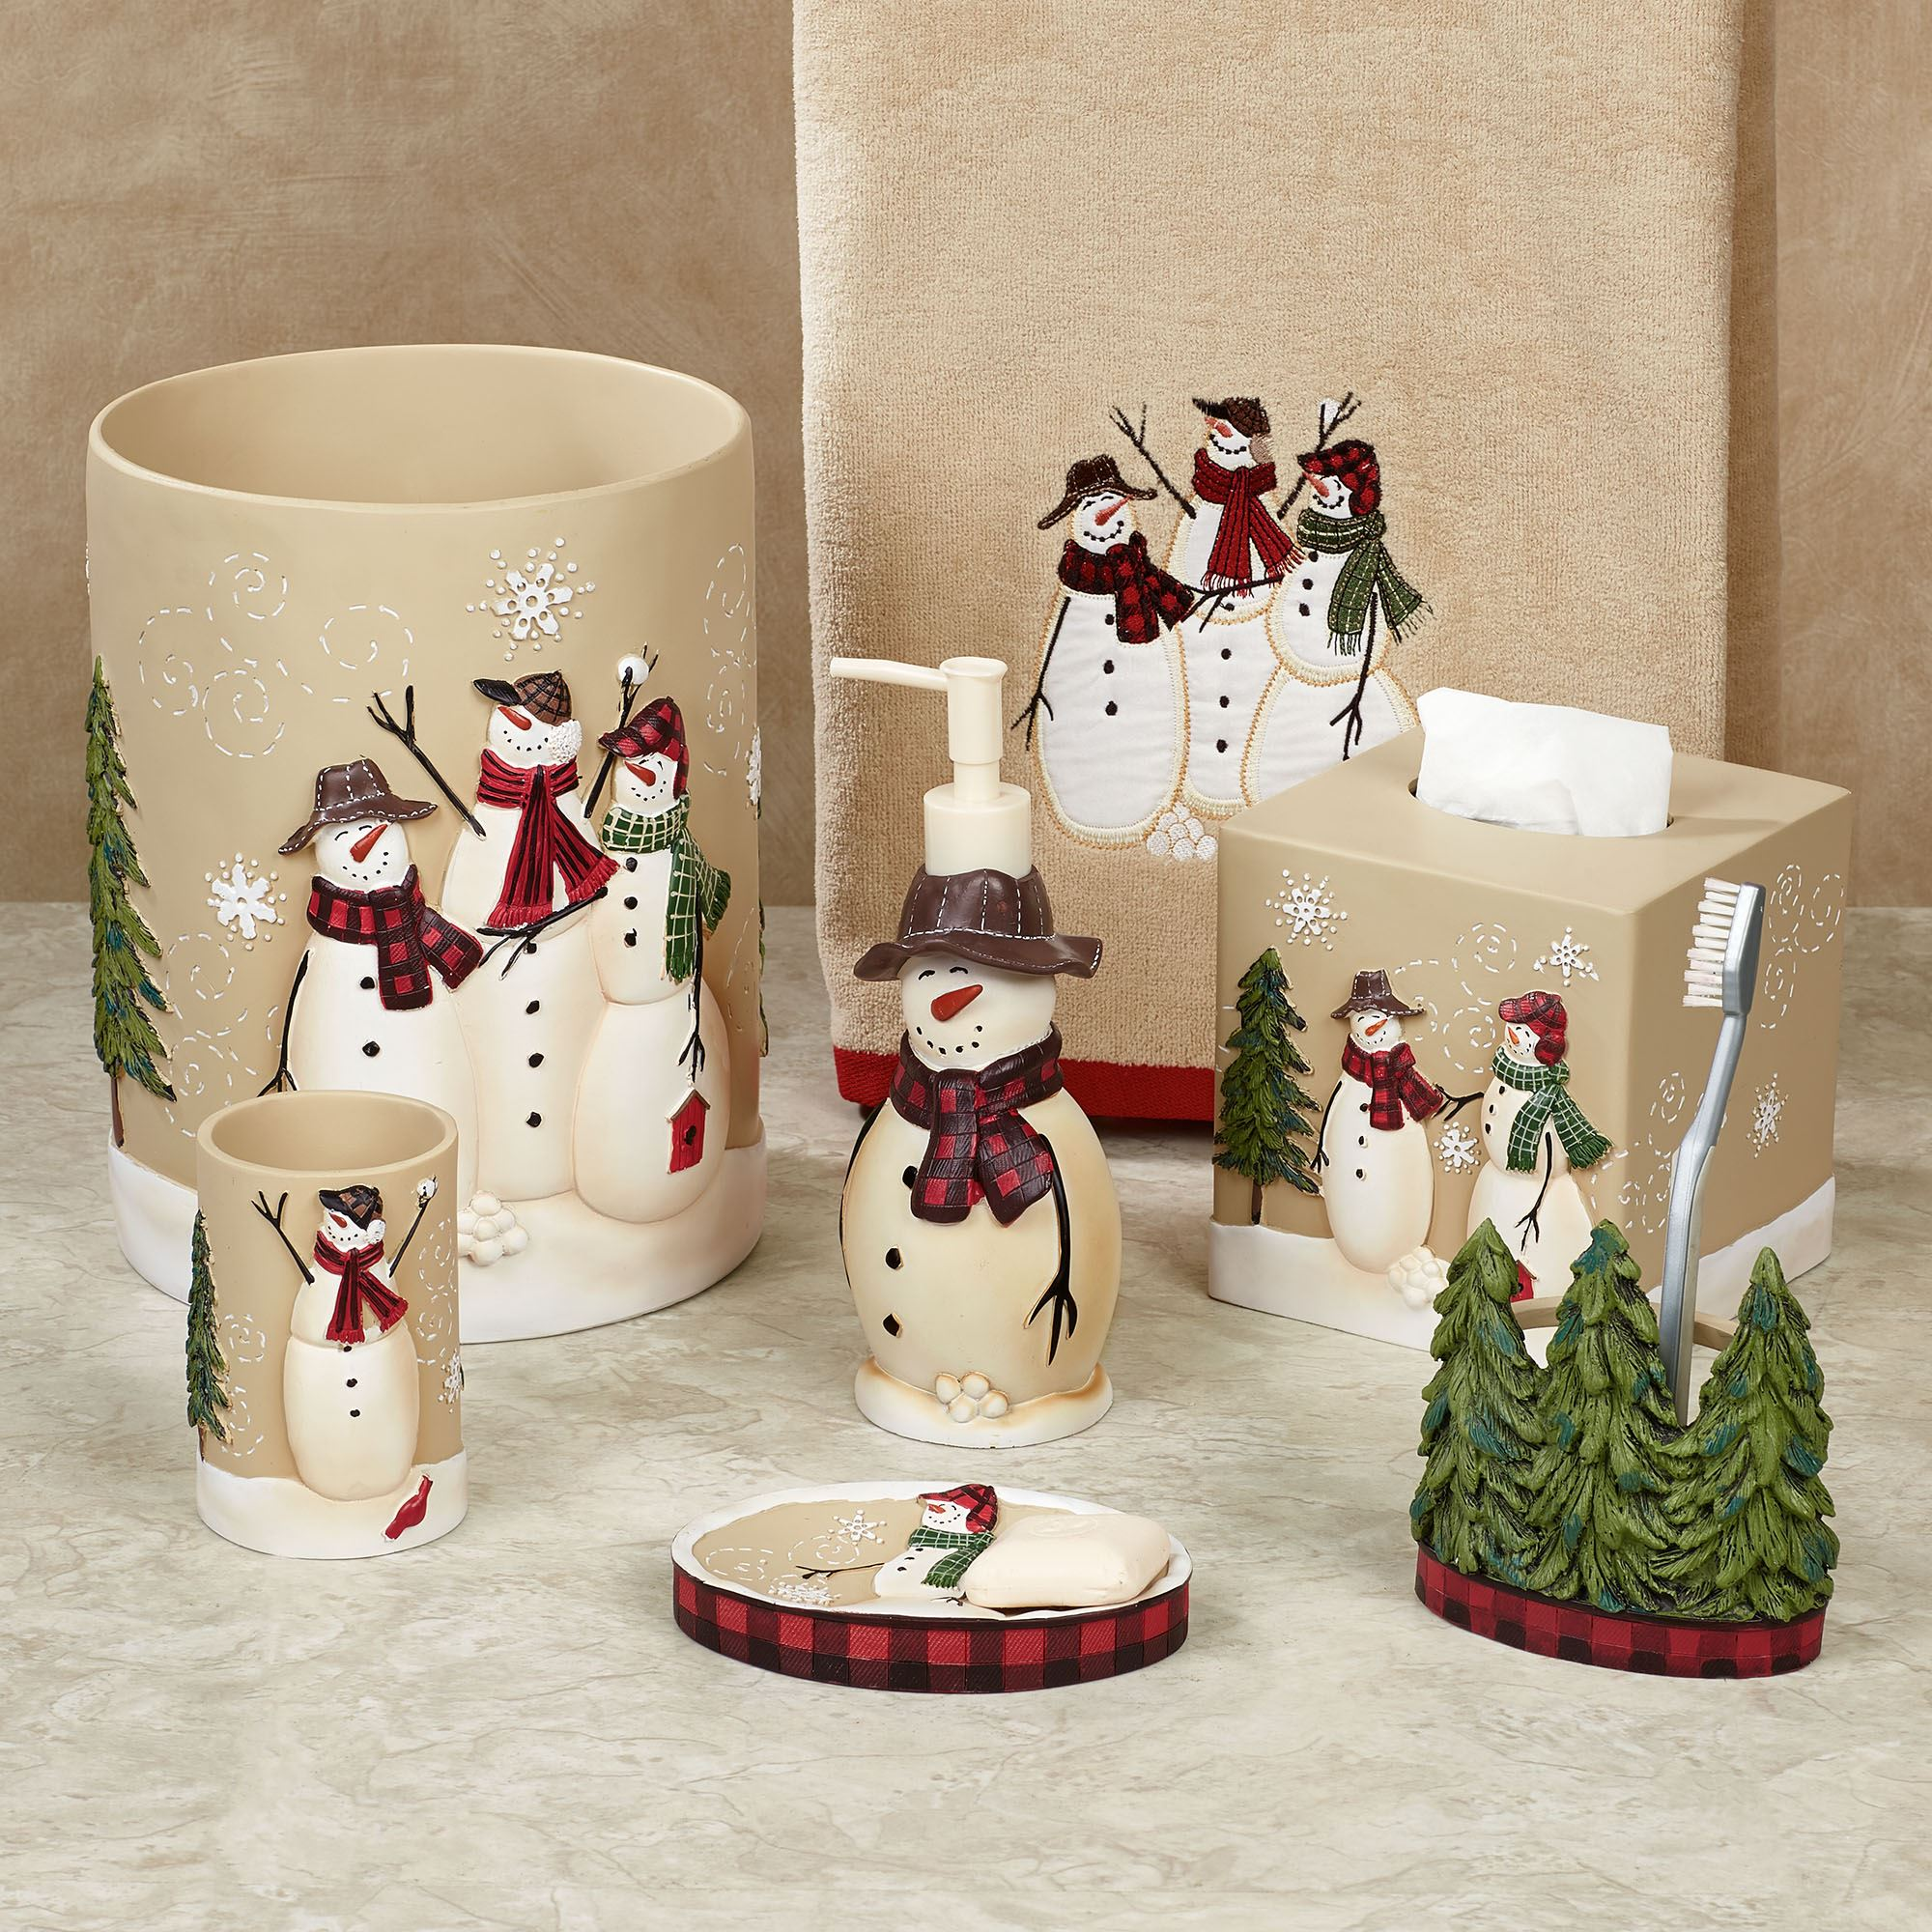 Christmas Bathroom Accessories